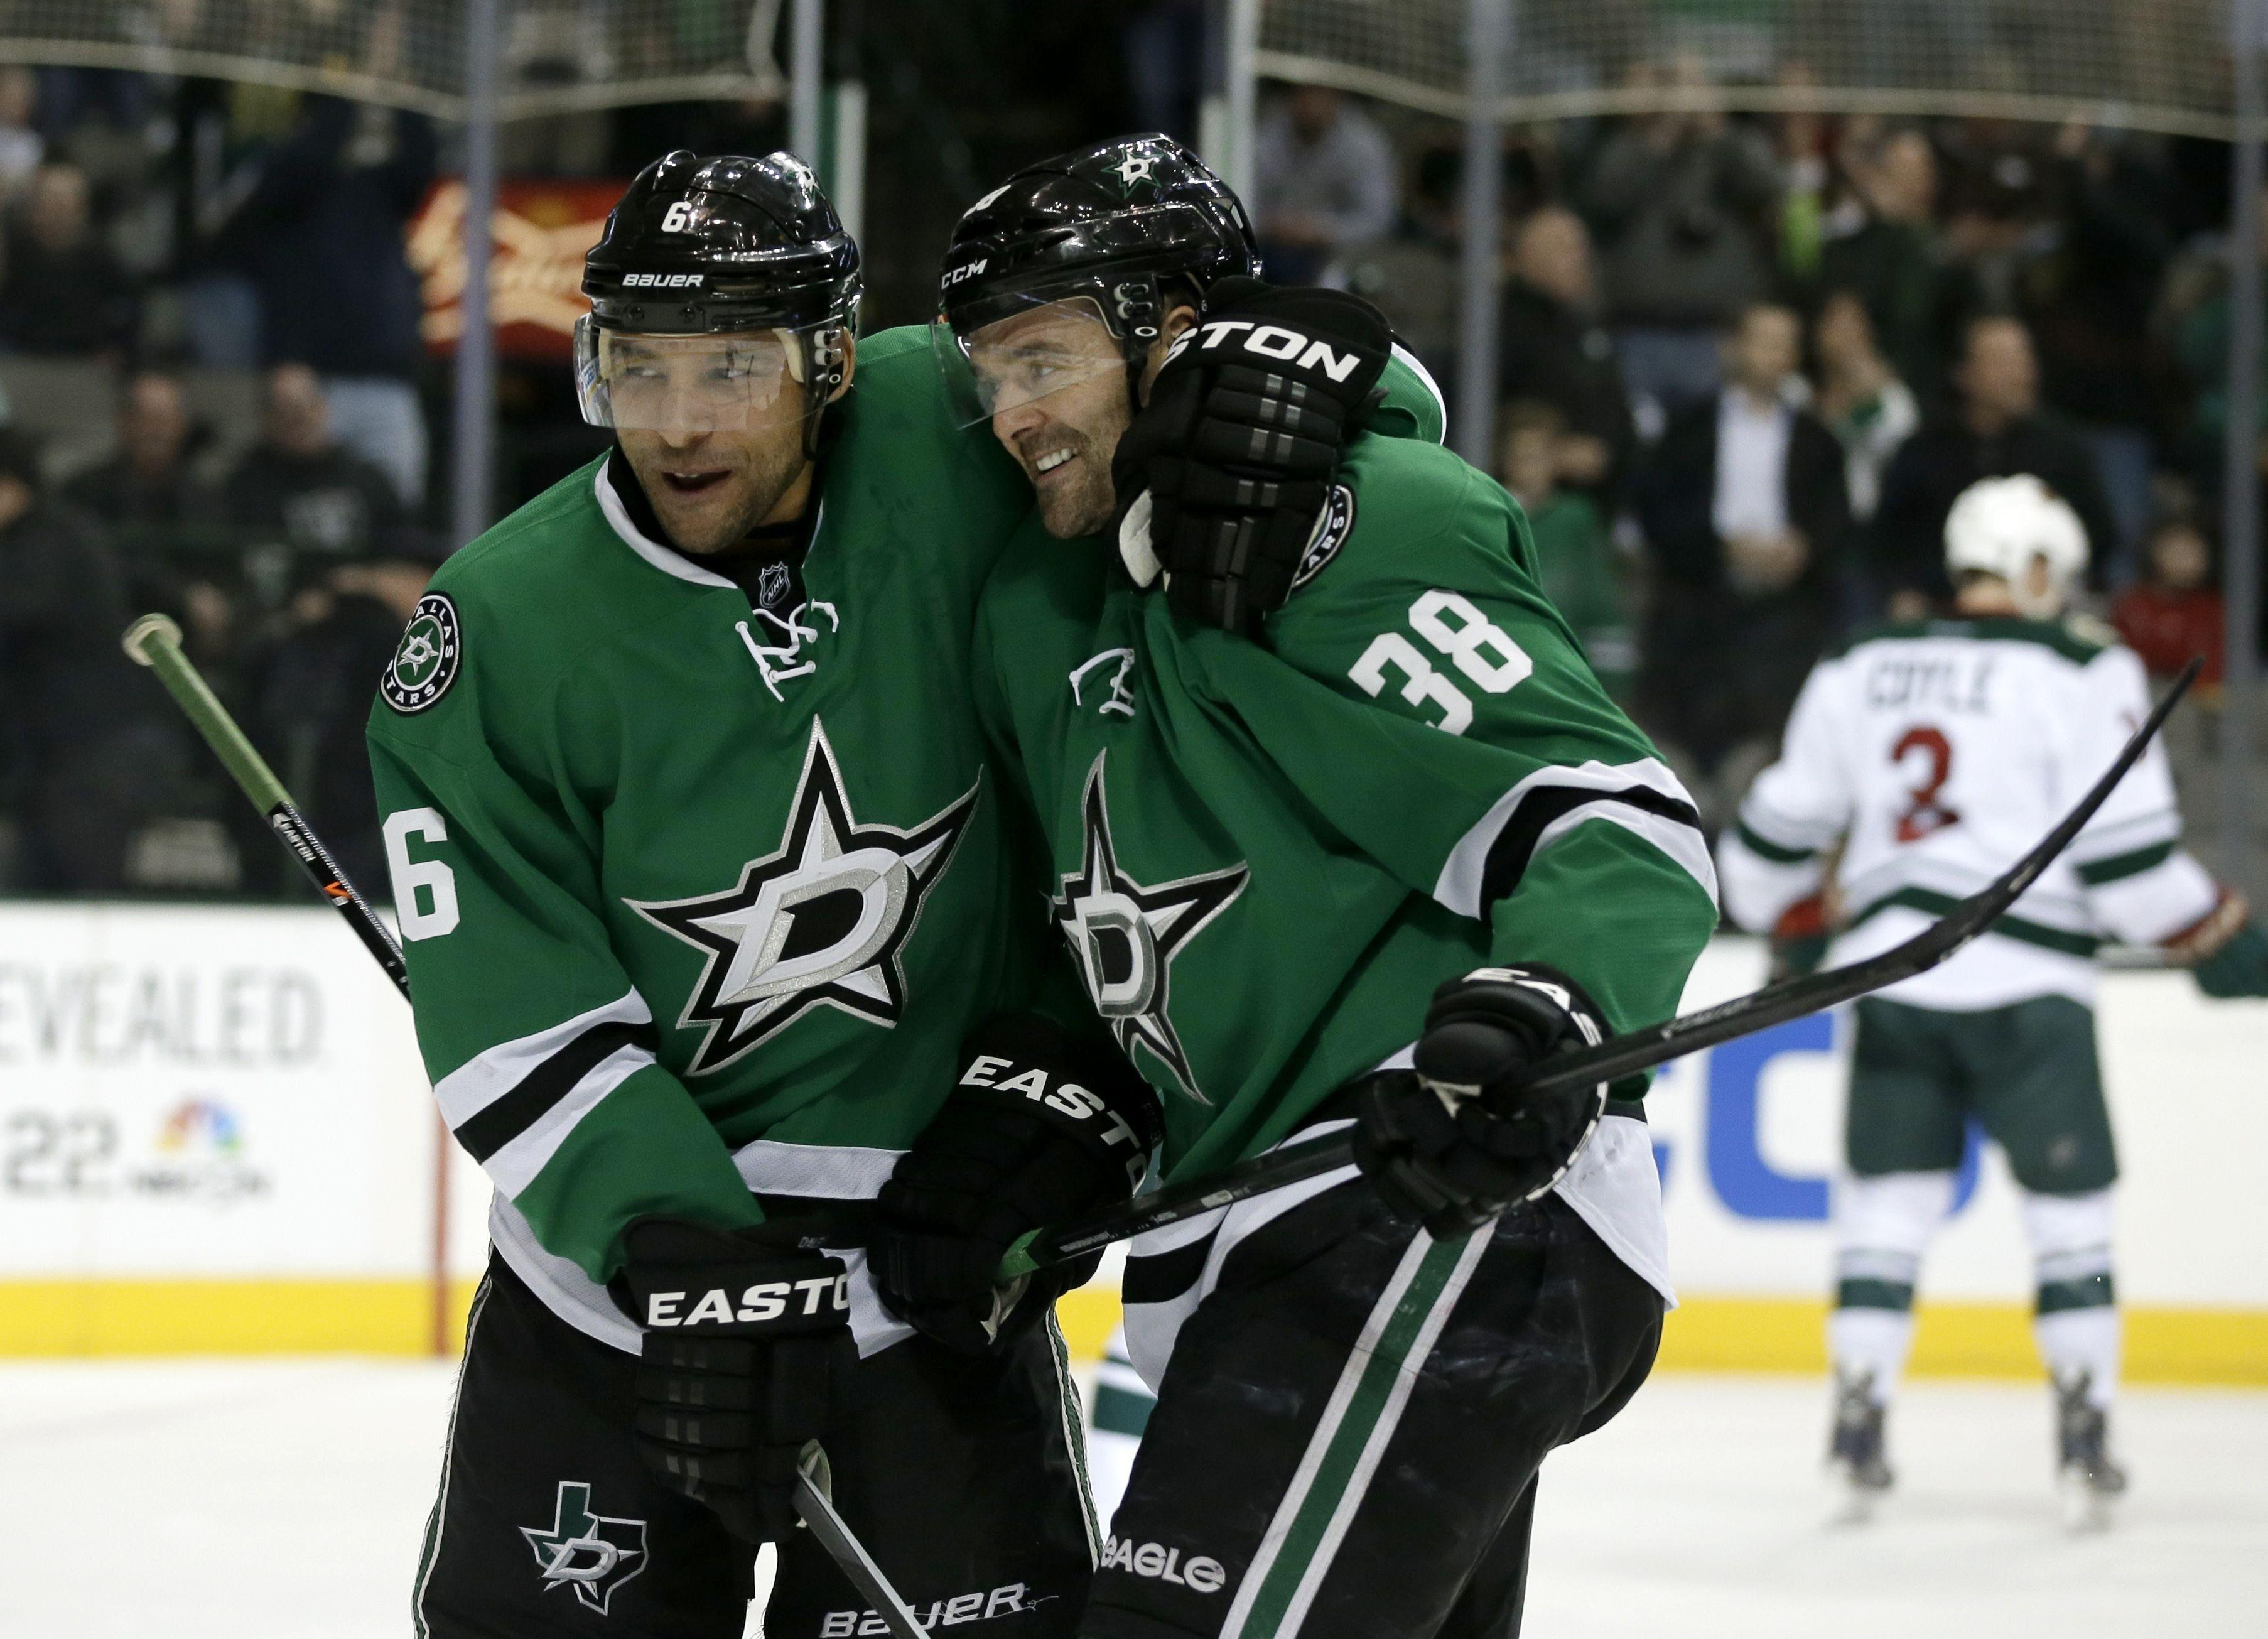 DALLAS STARS nhl hockey texas (12) wallpaper | 3612x2610 | 323265 ...